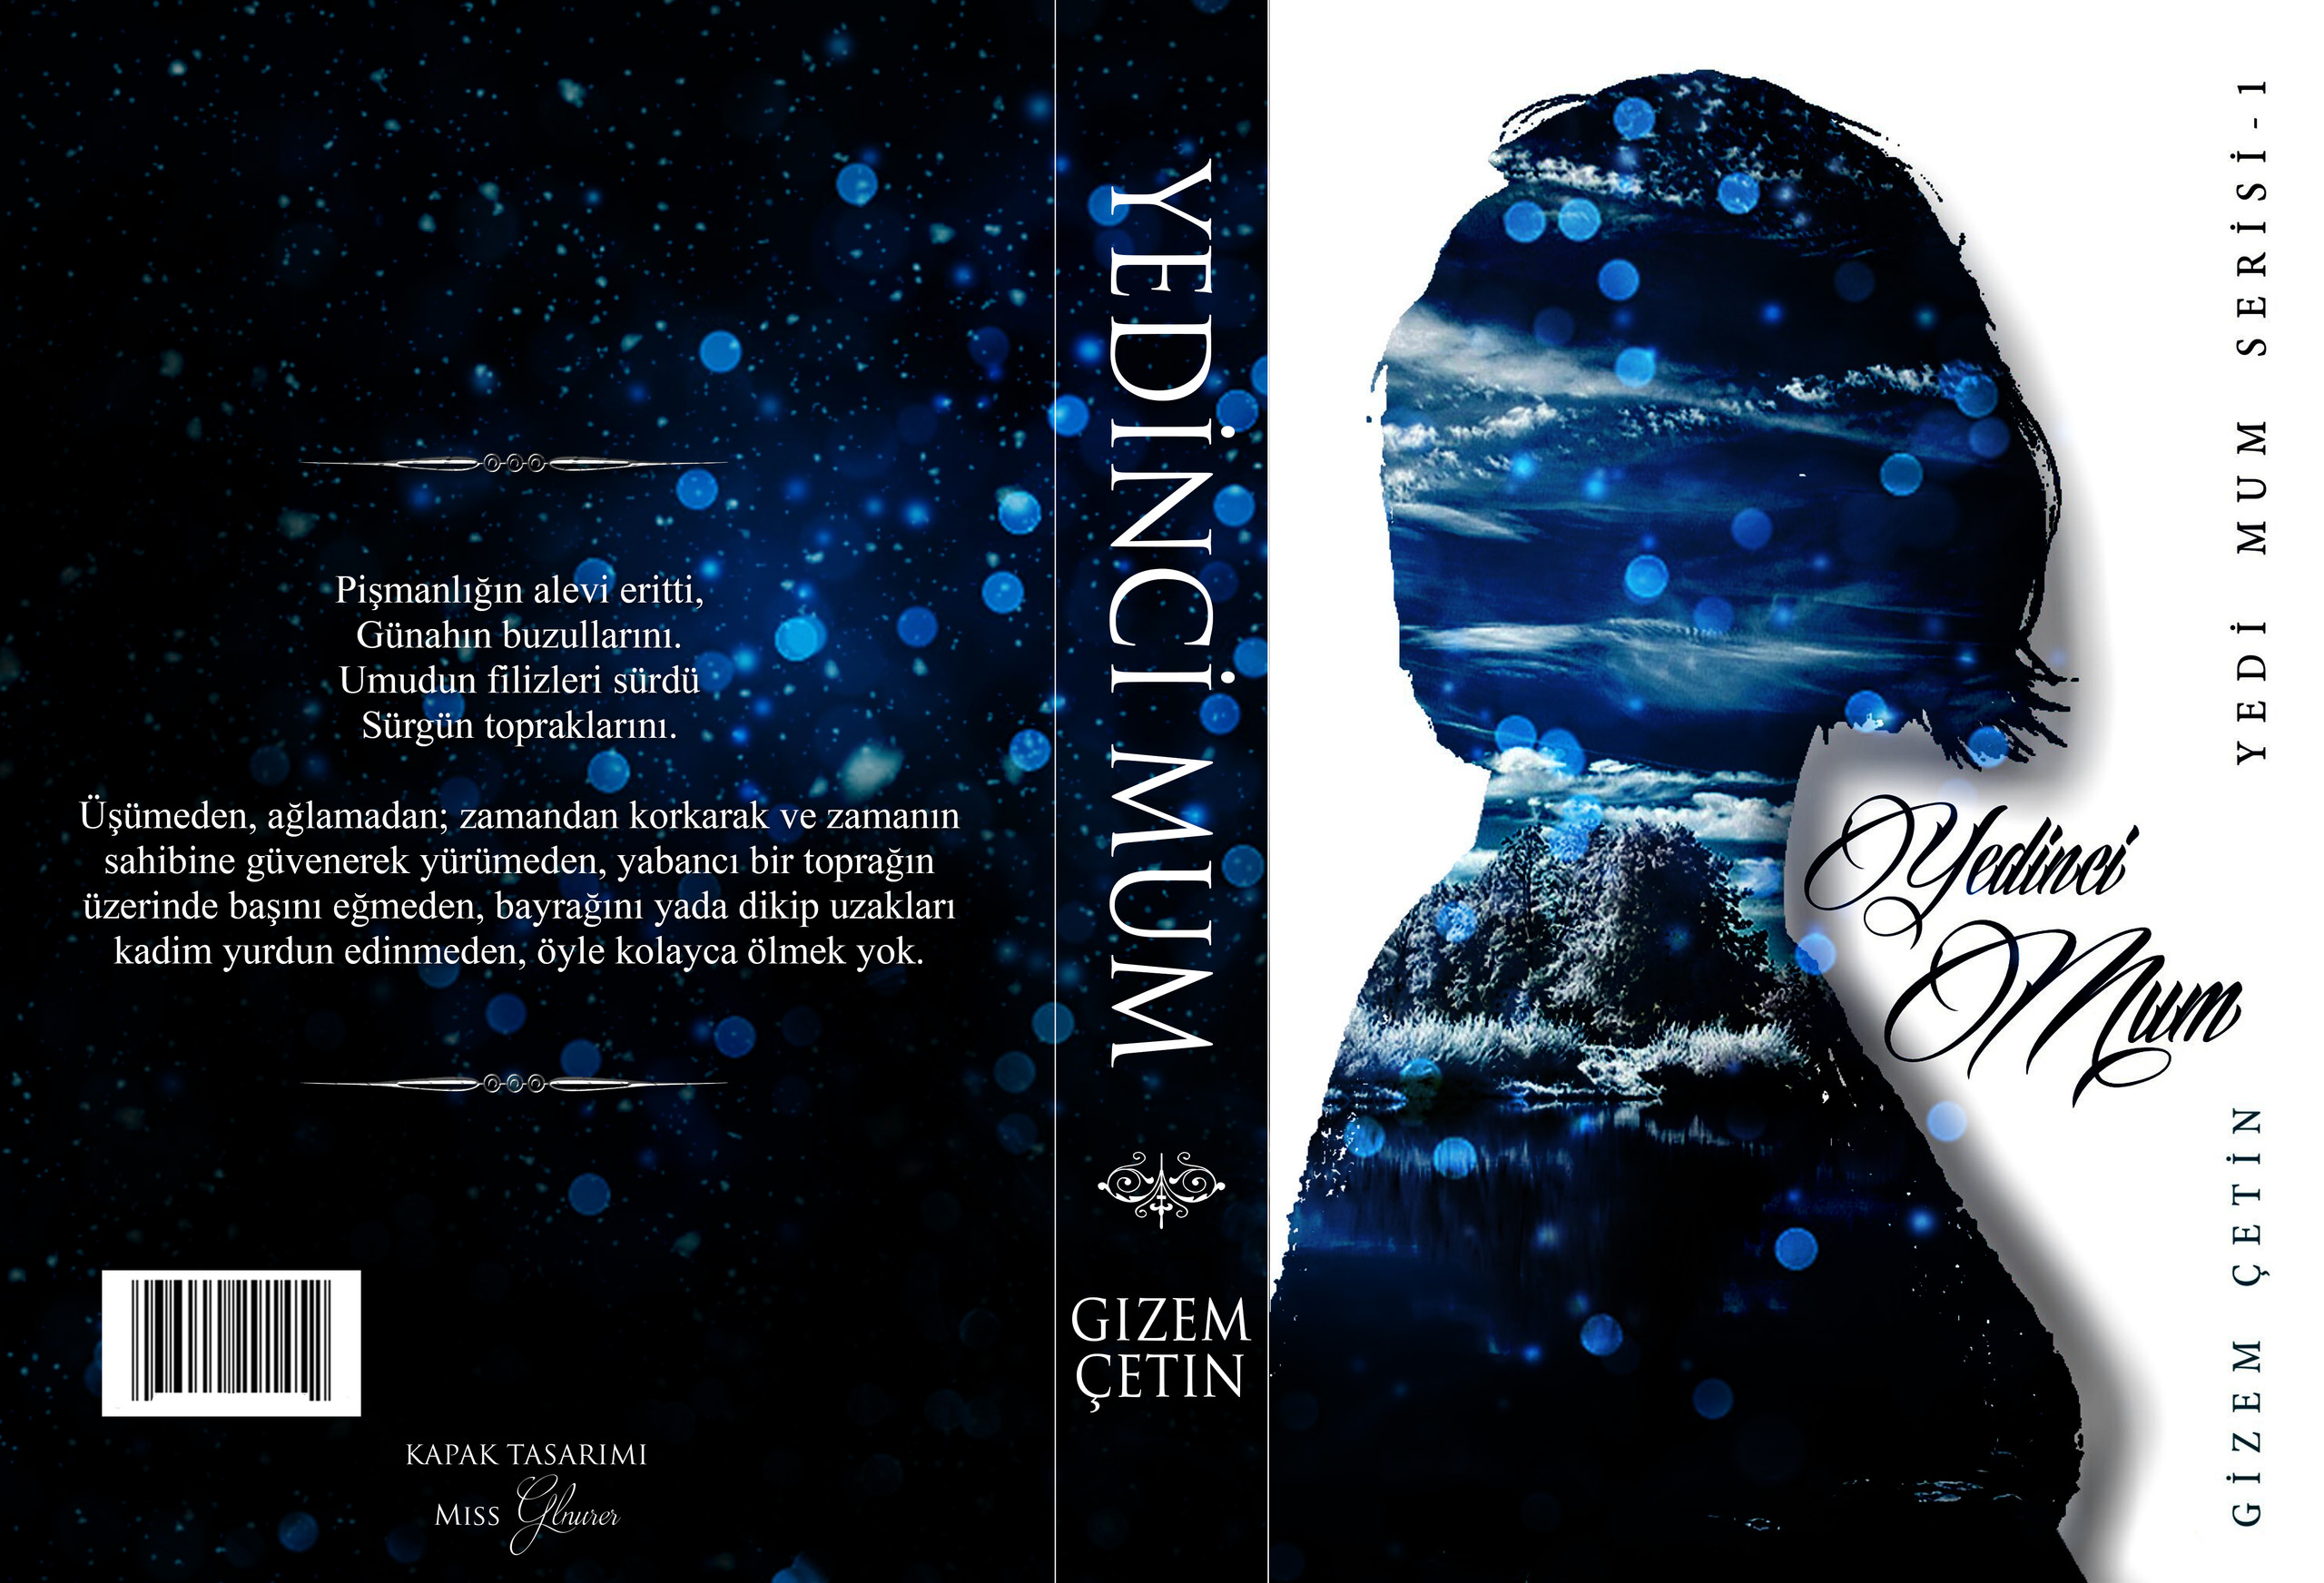 """News About """"Yedinci Mum"""" (The Seventh Candle)"""